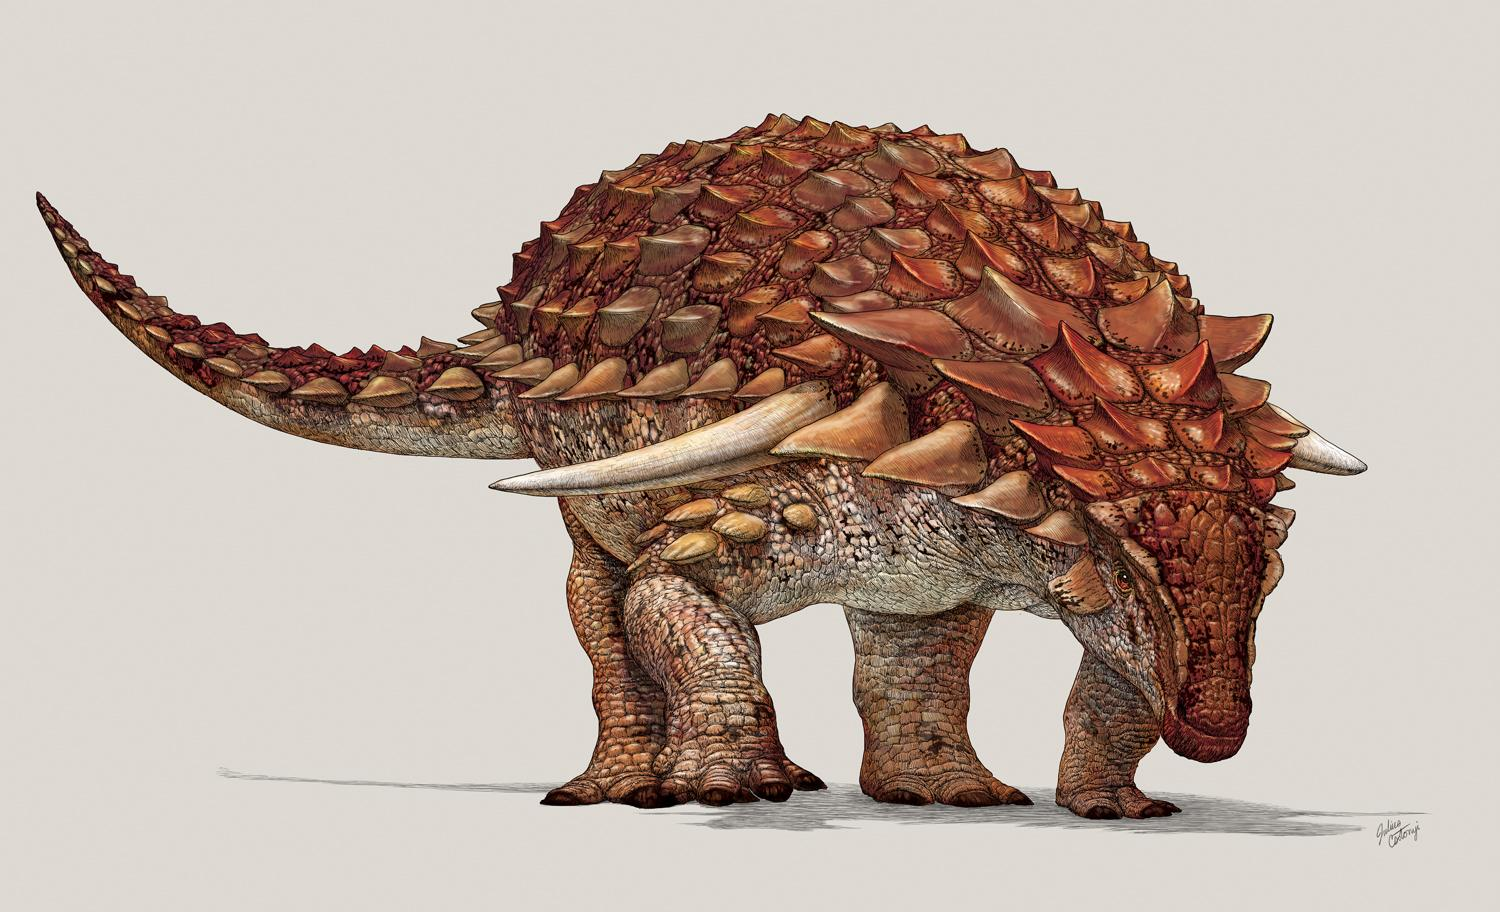 Massive Dinosaur With Armor Had Camouflage, Scientists Say